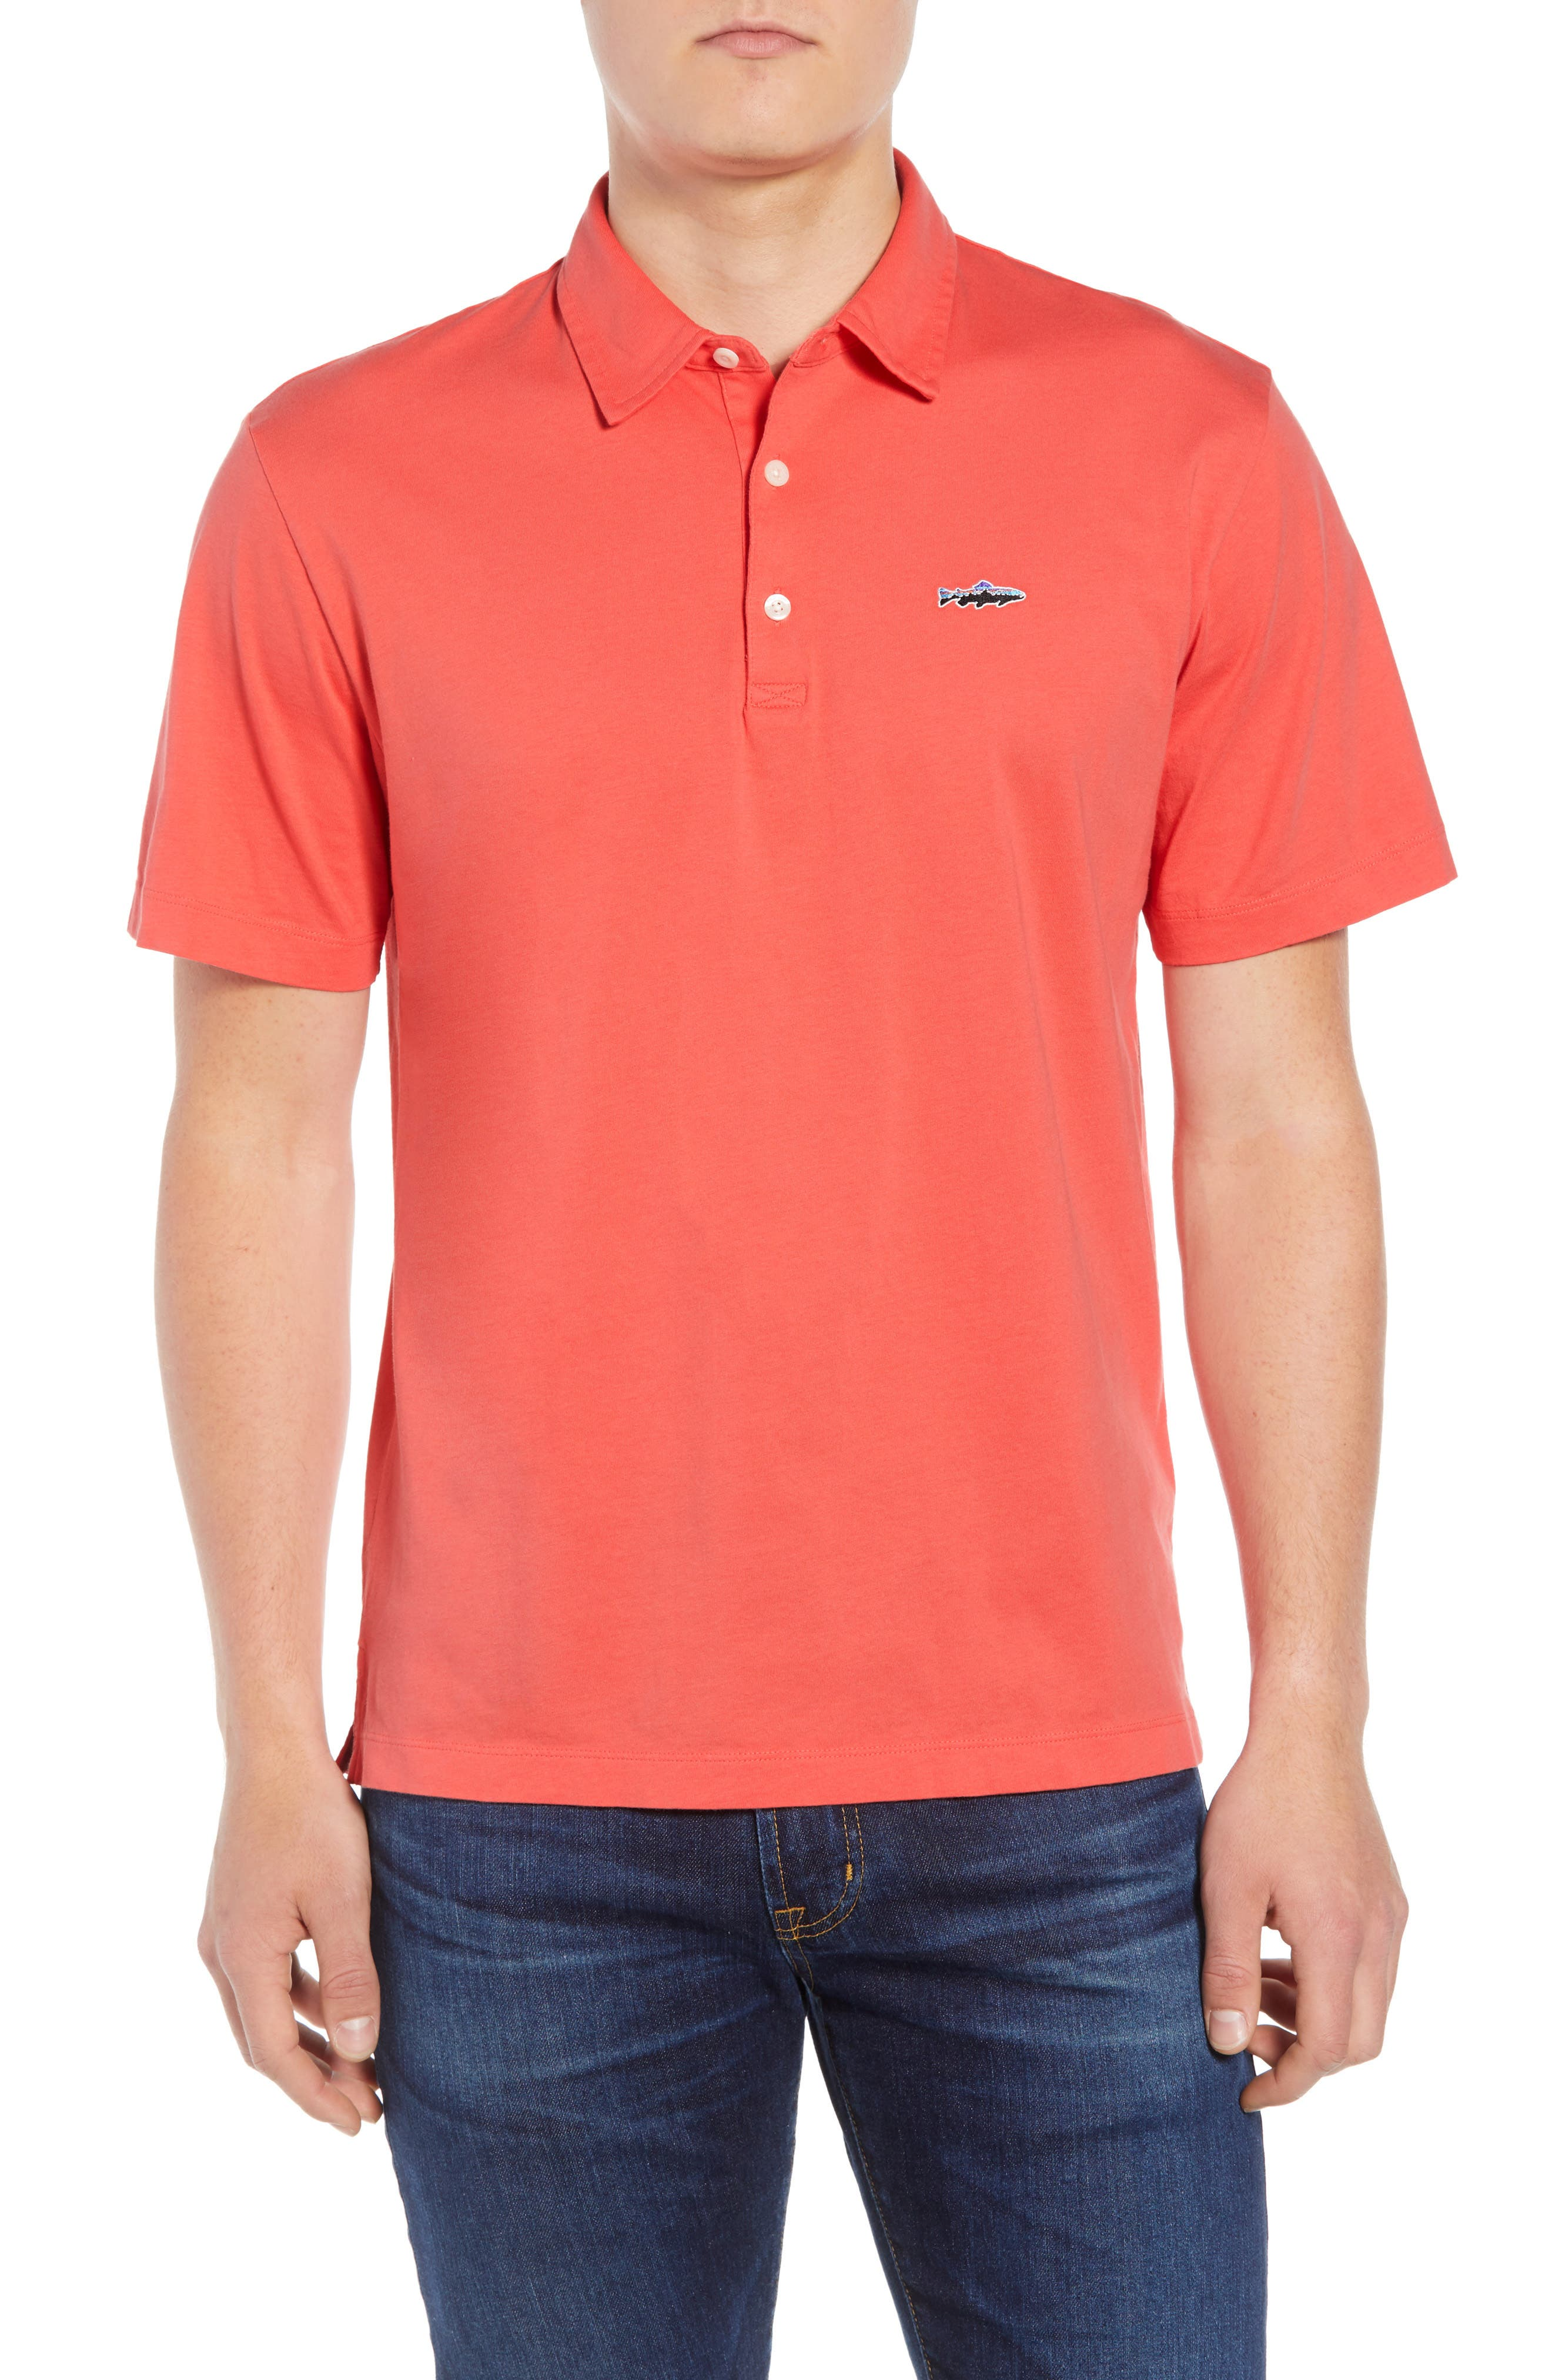 'Trout Fitz Roy' Organic Cotton Polo,                             Main thumbnail 1, color,                             SPICED CORAL